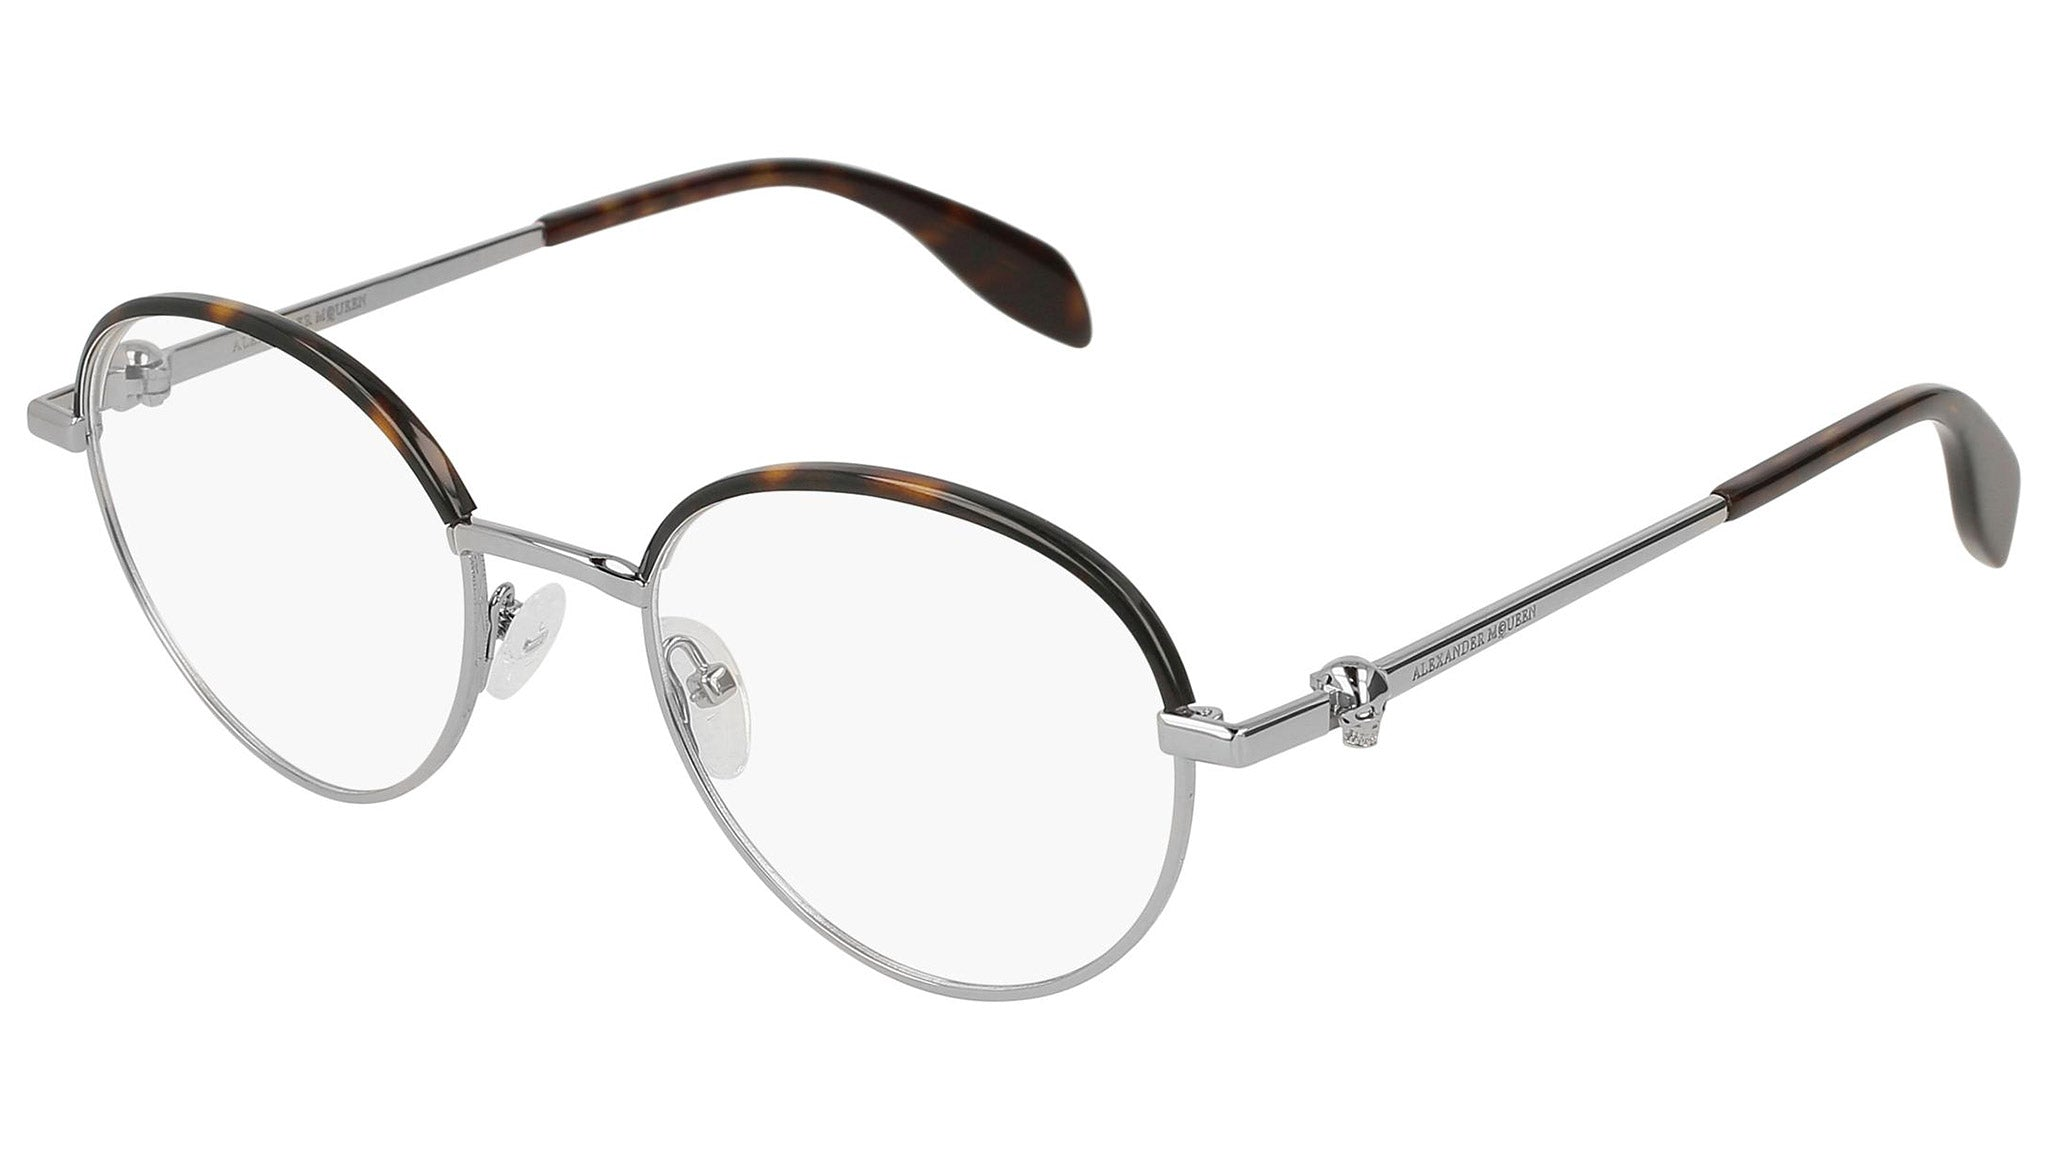 AM0153O 003 light ruthenium and classic havana